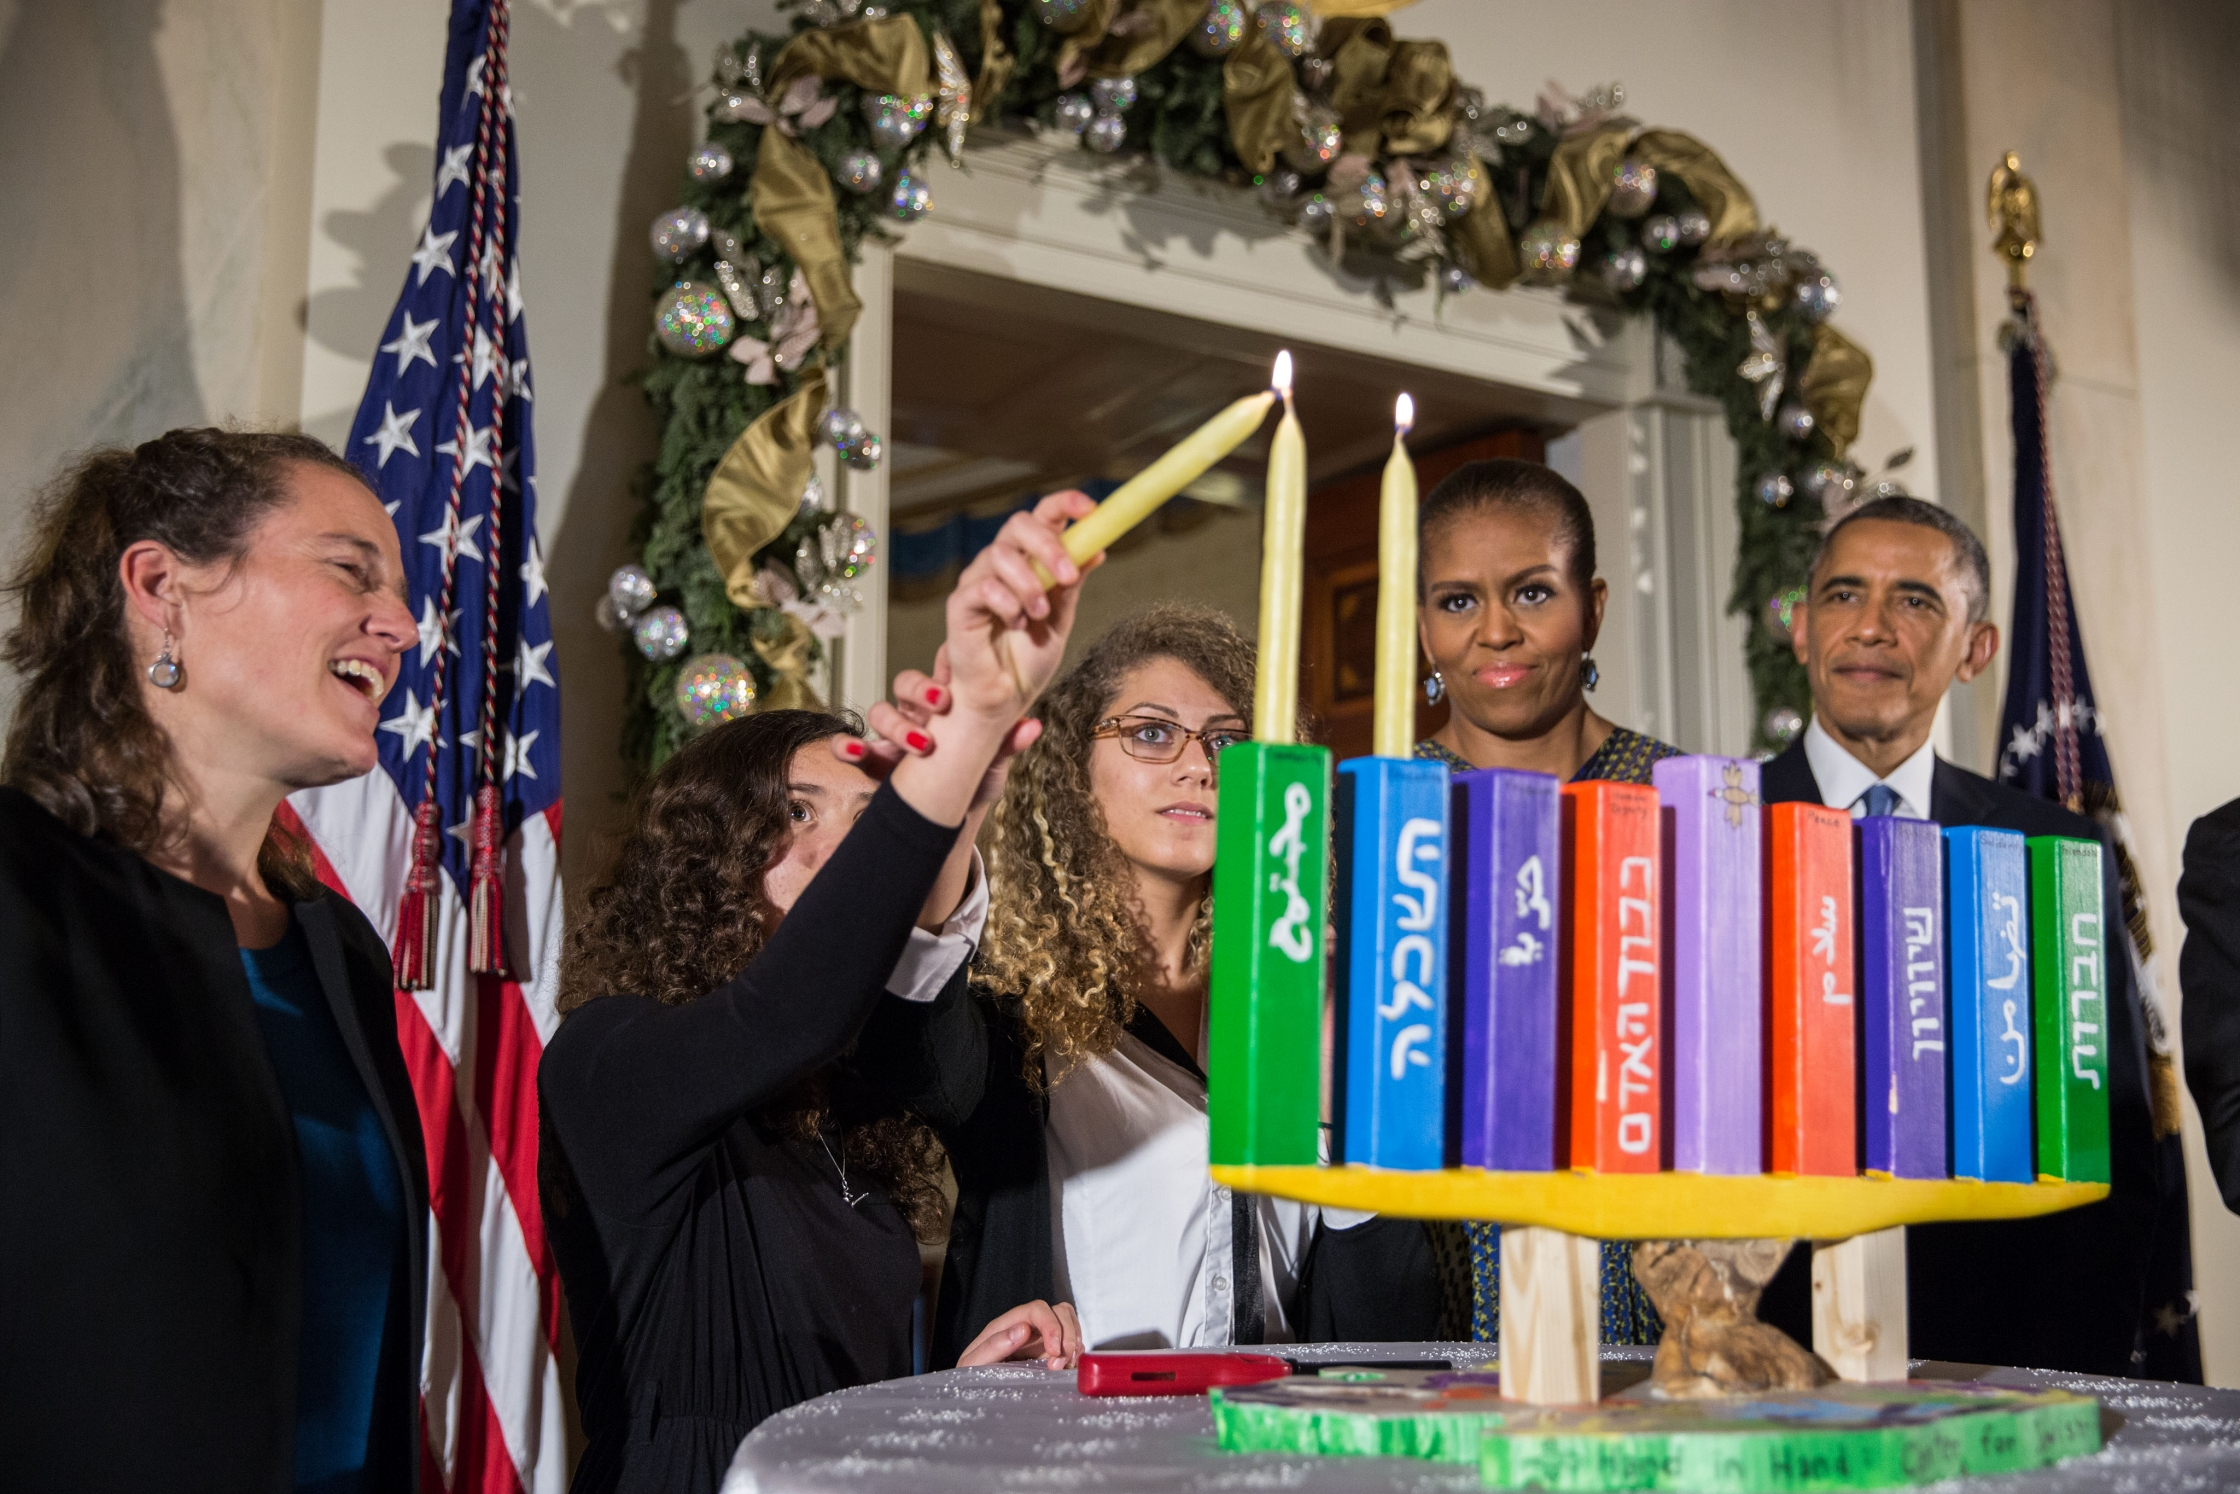 President Barack Obama, First Lady Michelle Obama, Rabbi Bradley Artson, and students from Hand in Hand participate in the Menorah lighting during the afternoon Hanukkah reception in the Grand Foyer of the White House, Dec. 17, 2014. (Official White House Photo by Pete Souza)